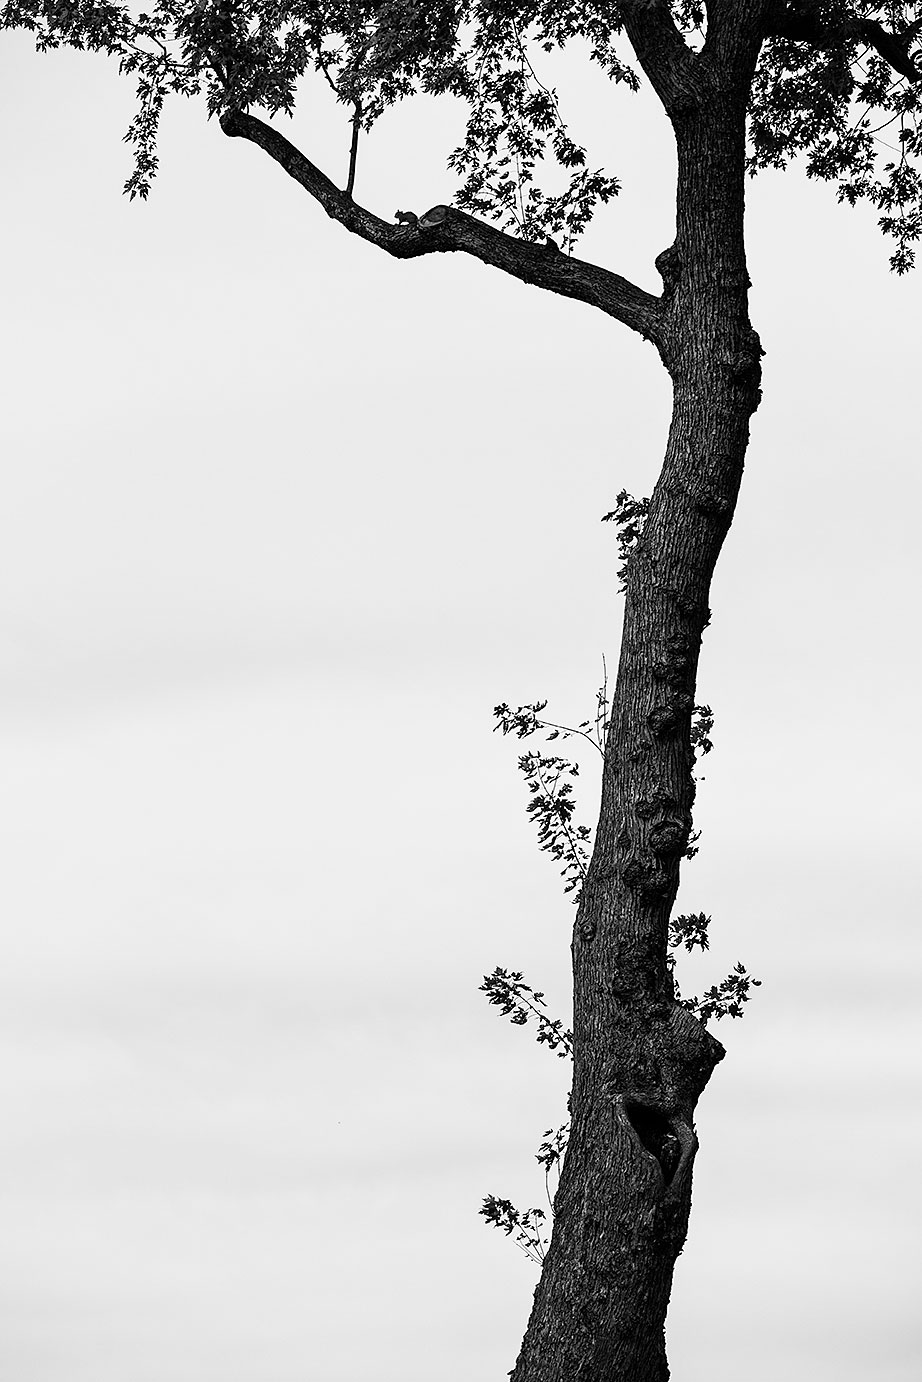 Tall Tree Against an Empty Sky